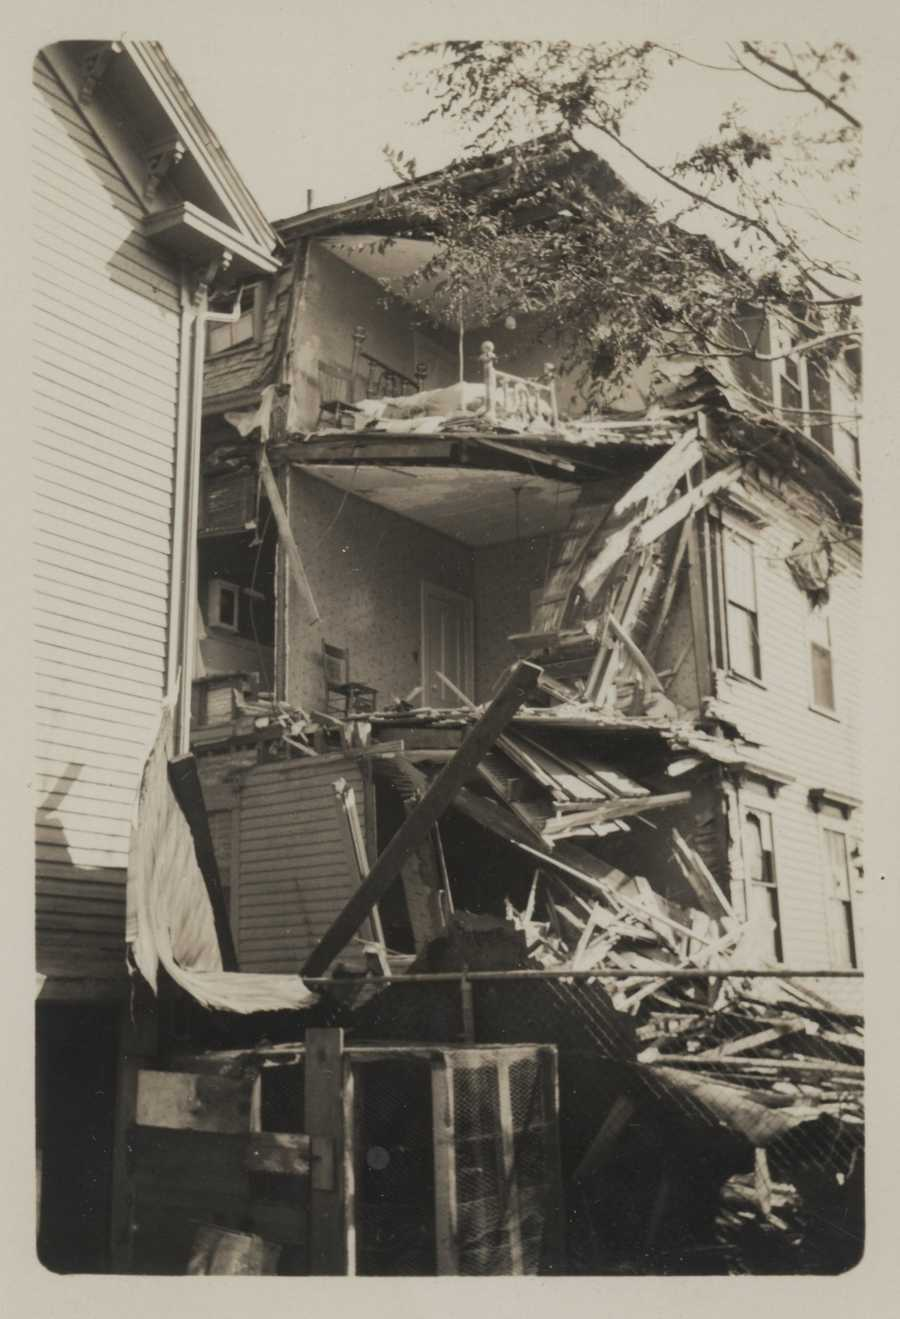 A falling chimney weakened and helped destroy much of the wall of this residence on West Friendship Street in Providence. New England Hurricane of 1938.